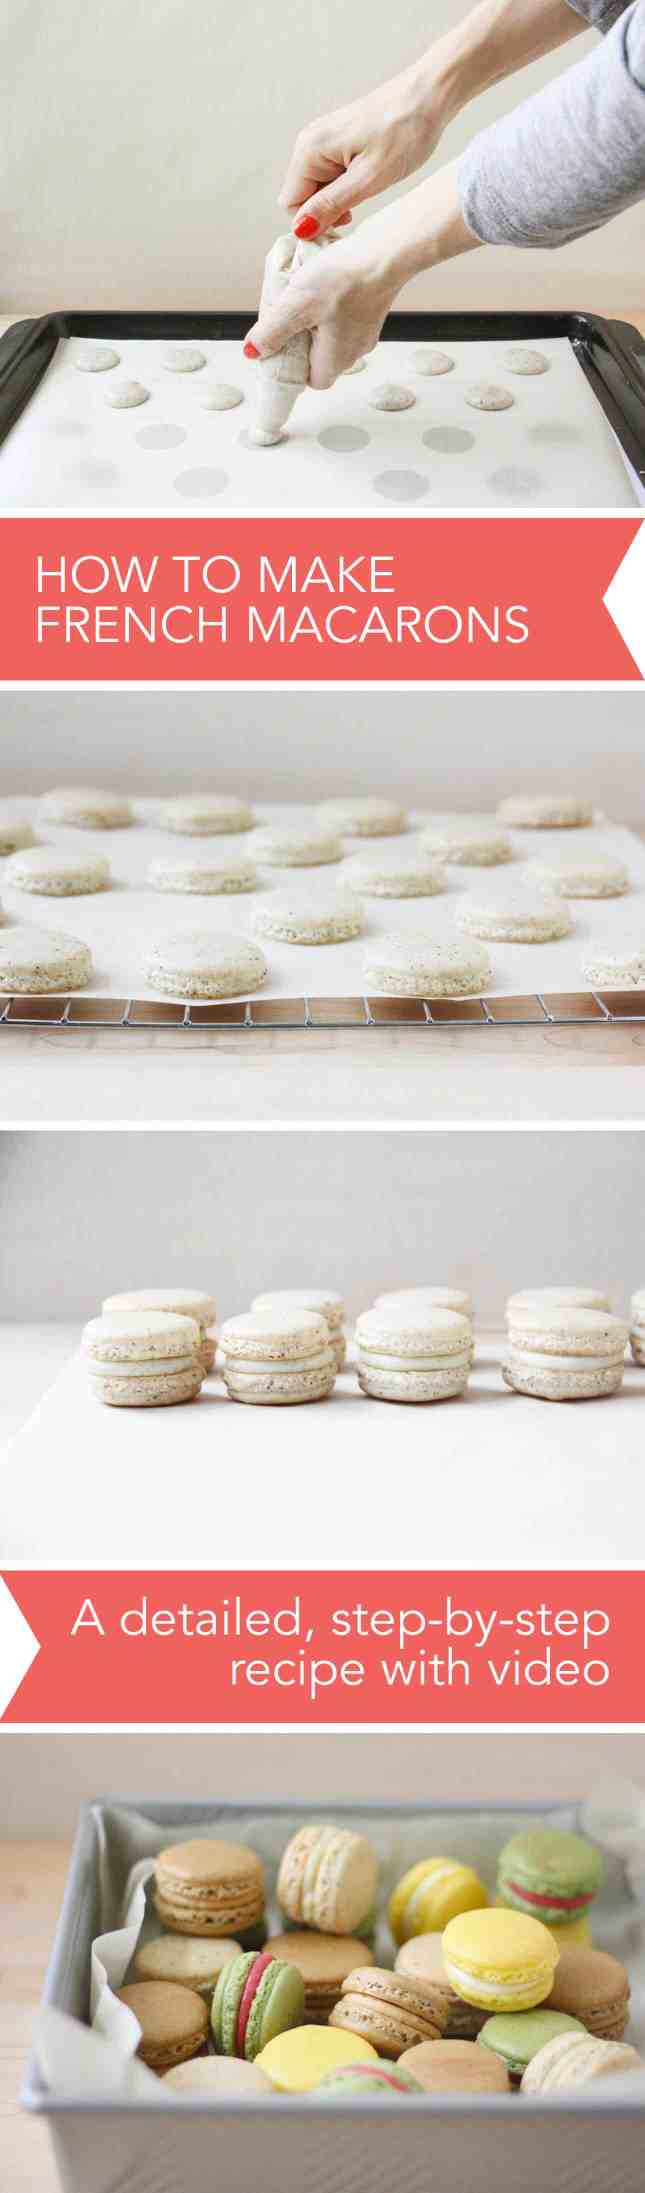 How to Make French Macarons, a Detailed, Step-by-Step Recipe with Video // FoodNouveau.com